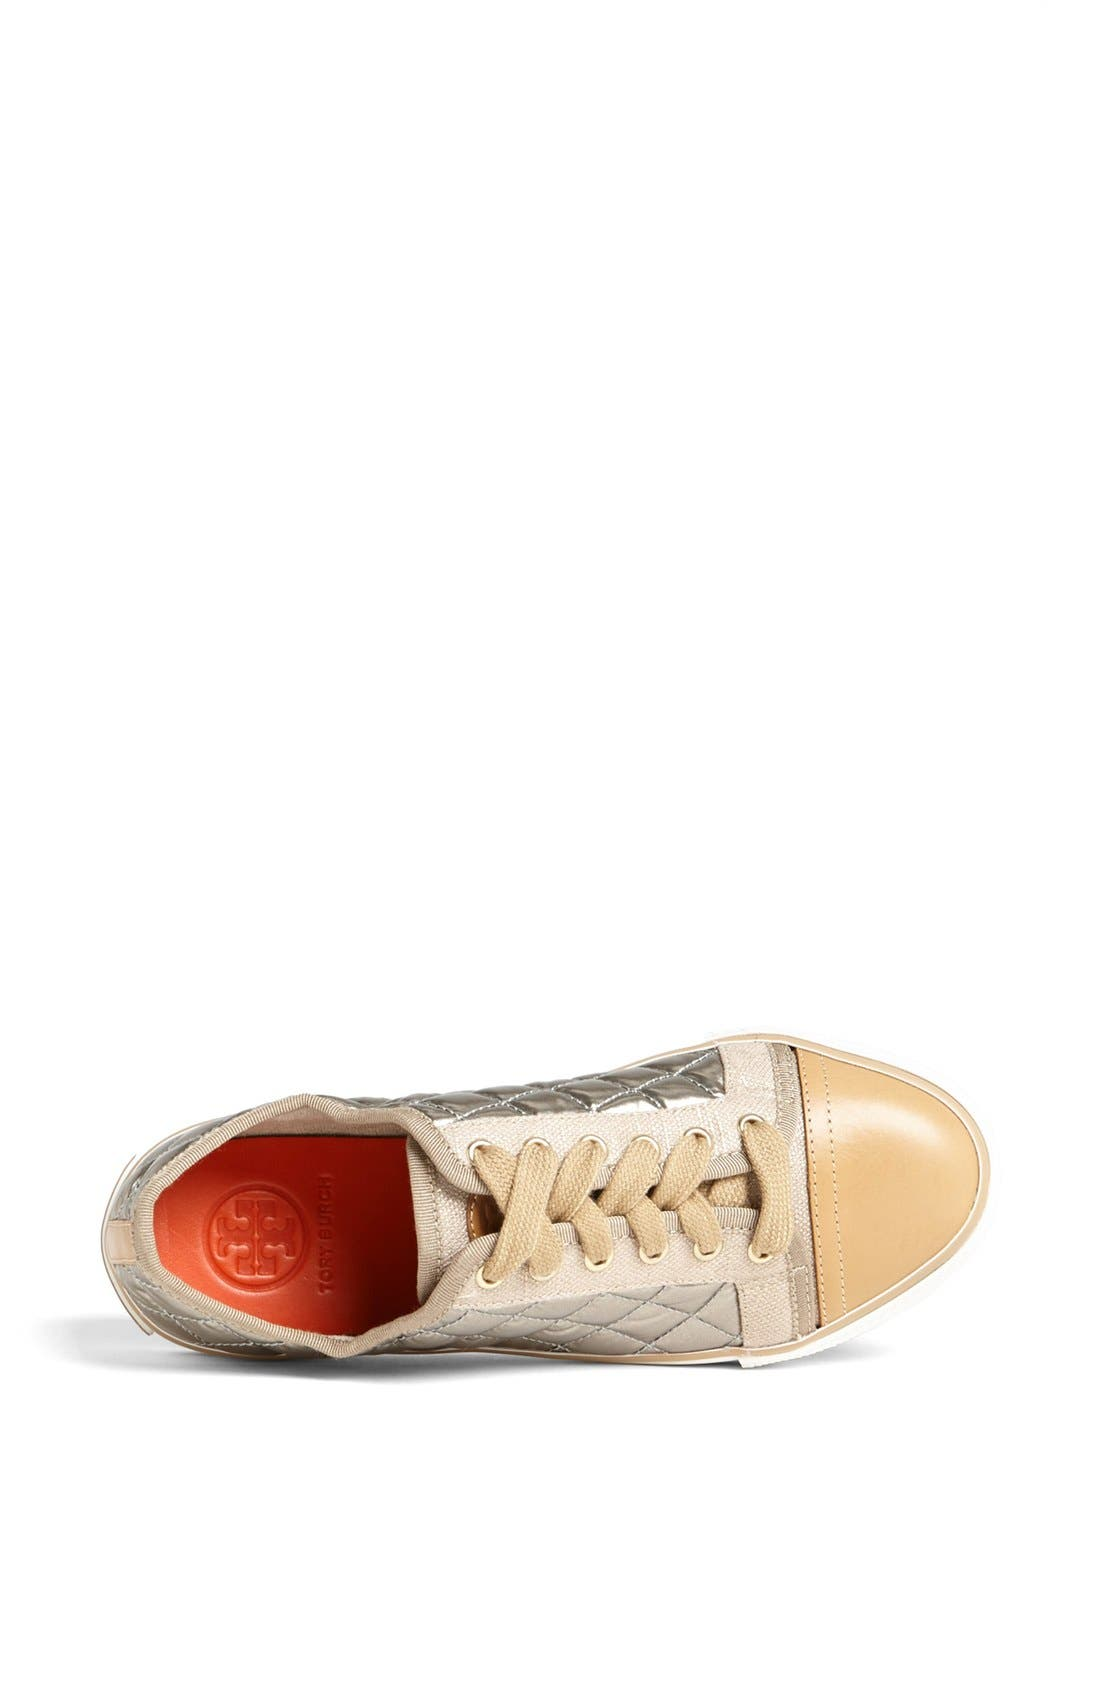 Alternate Image 3  - Tory Burch 'Caspe' Quilted Metallic Leather Sneaker